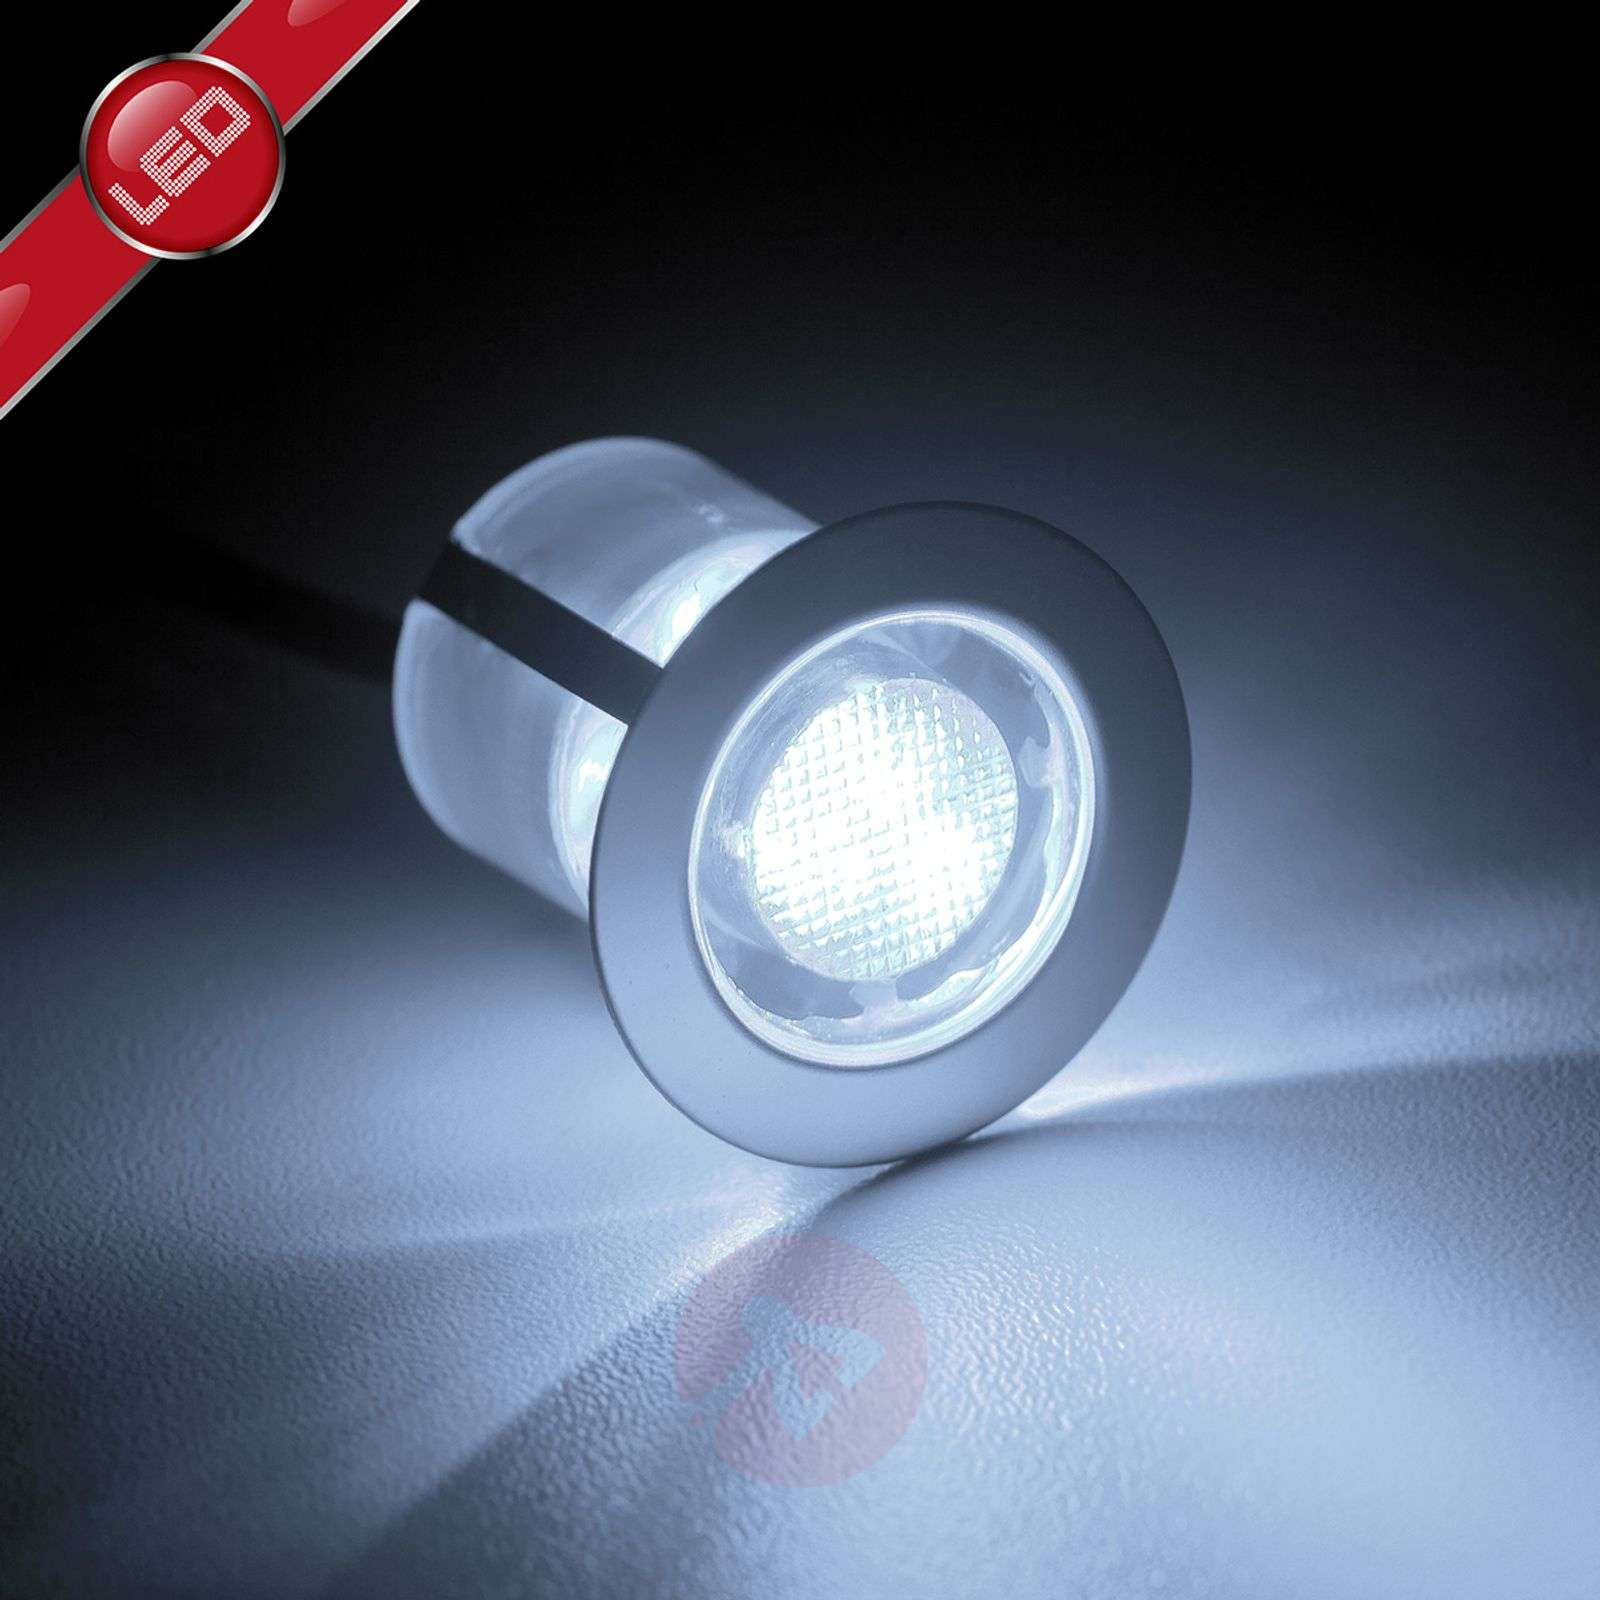 Luminaires LED Cosa, 3 cm, 10 pcs, blanc neutre